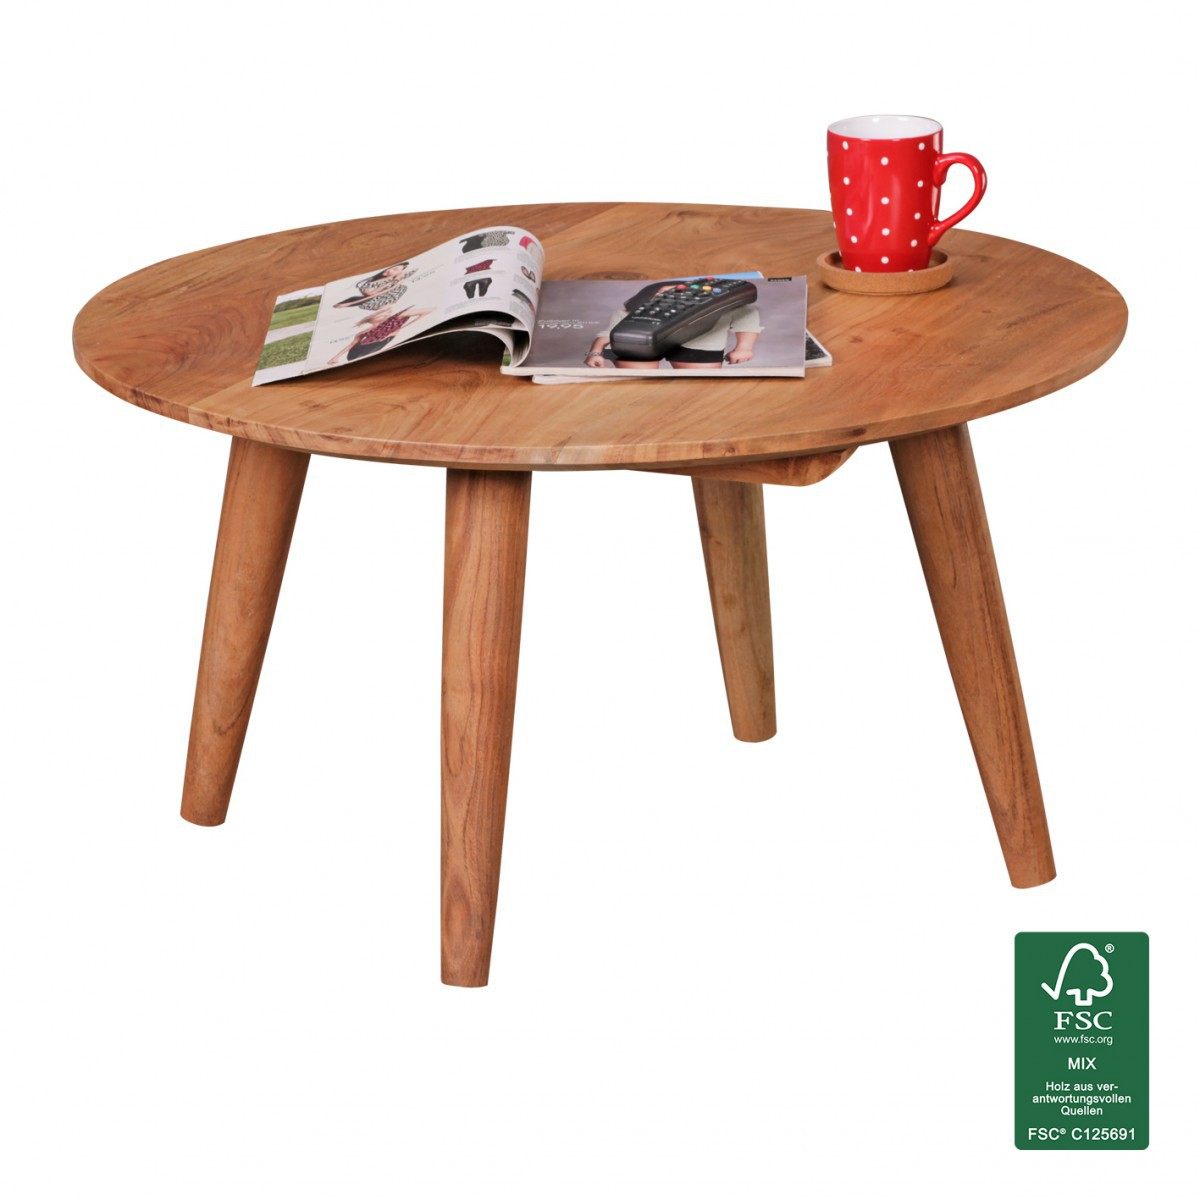 Finebuy table basse en bois massif acacia table basse for Table basse ronde blanc